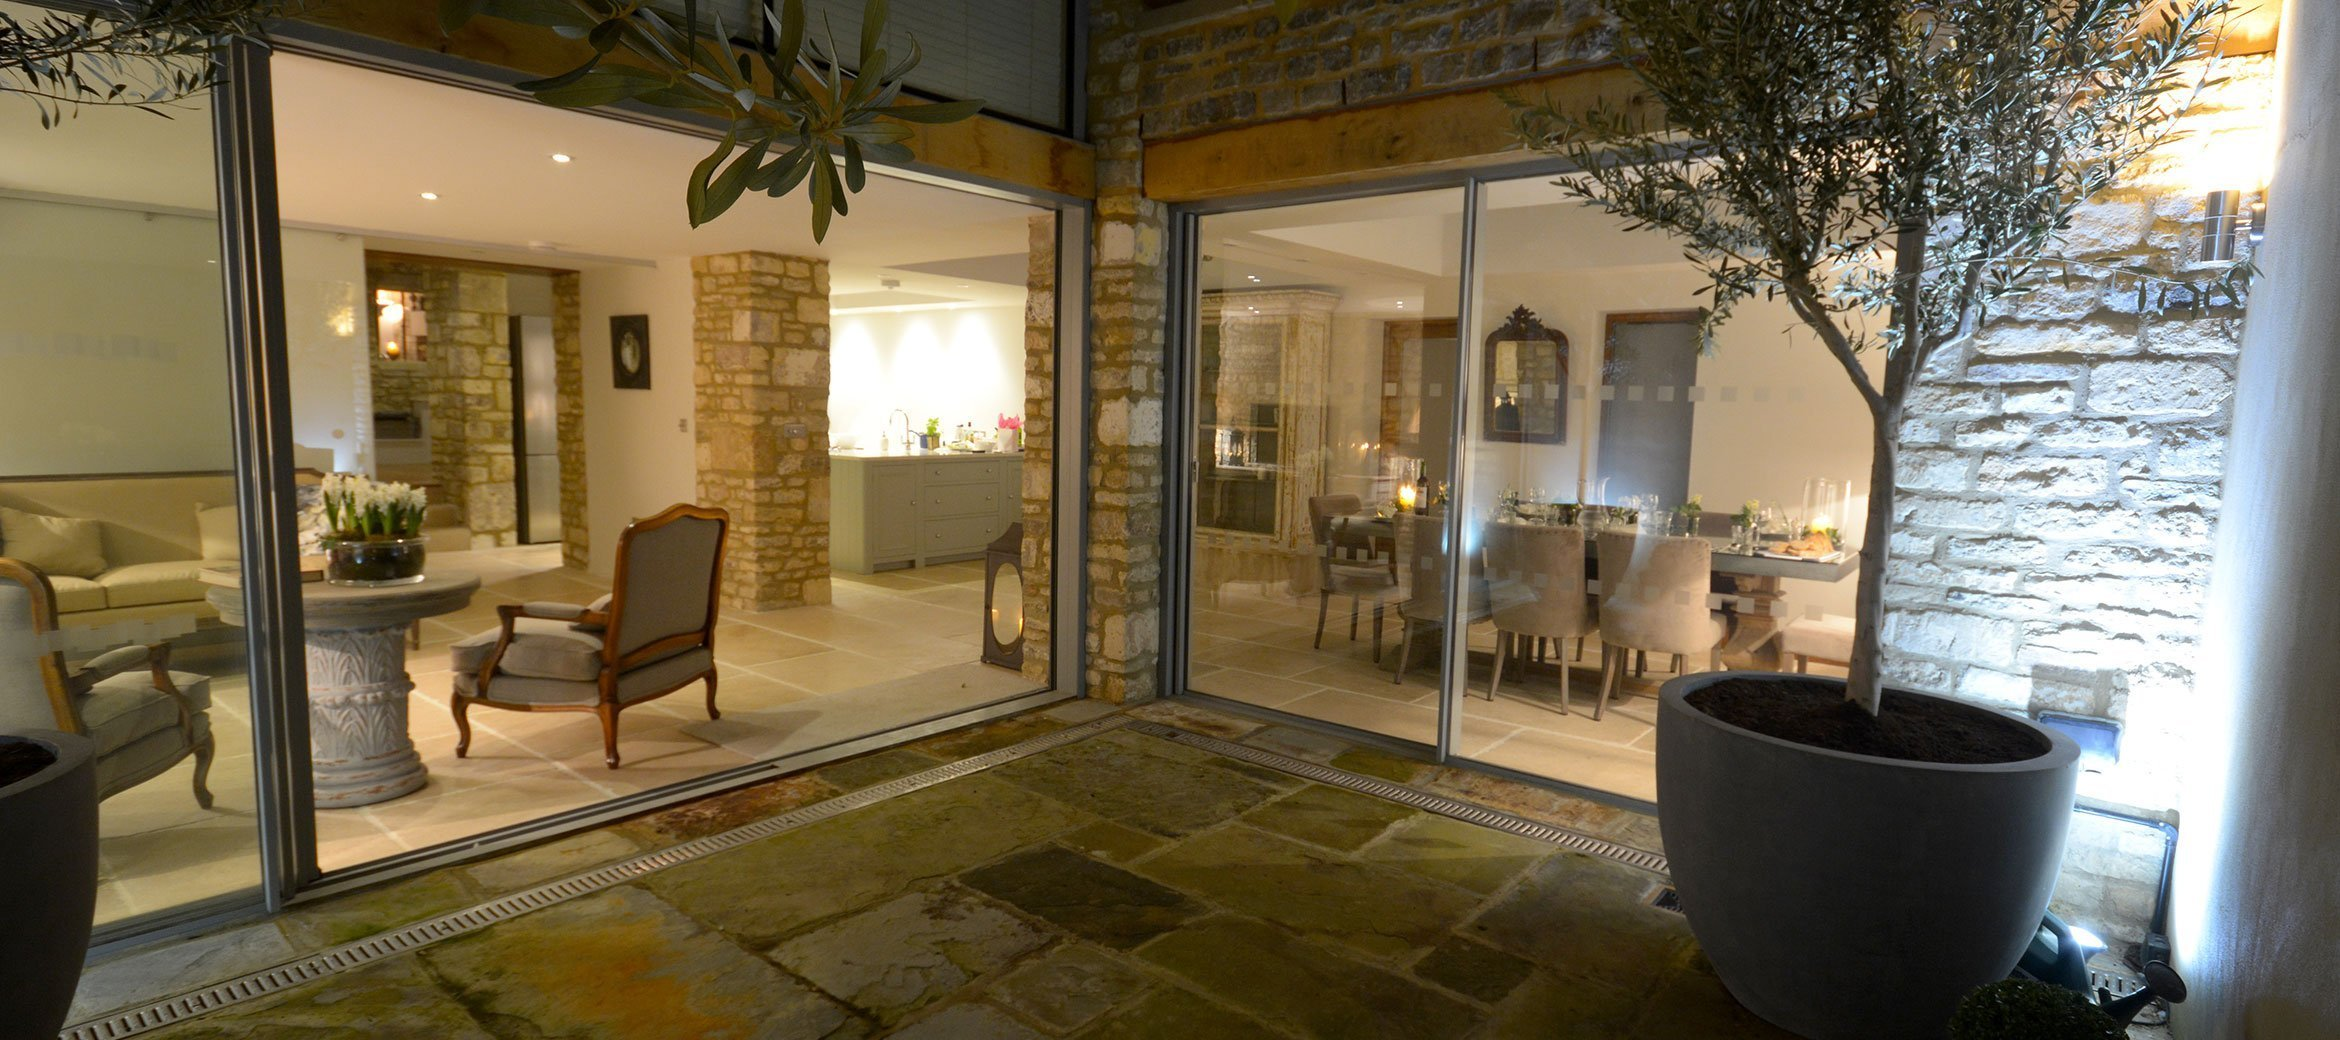 burford-cotswold-cottage-dining-kitchen-courtyard-night